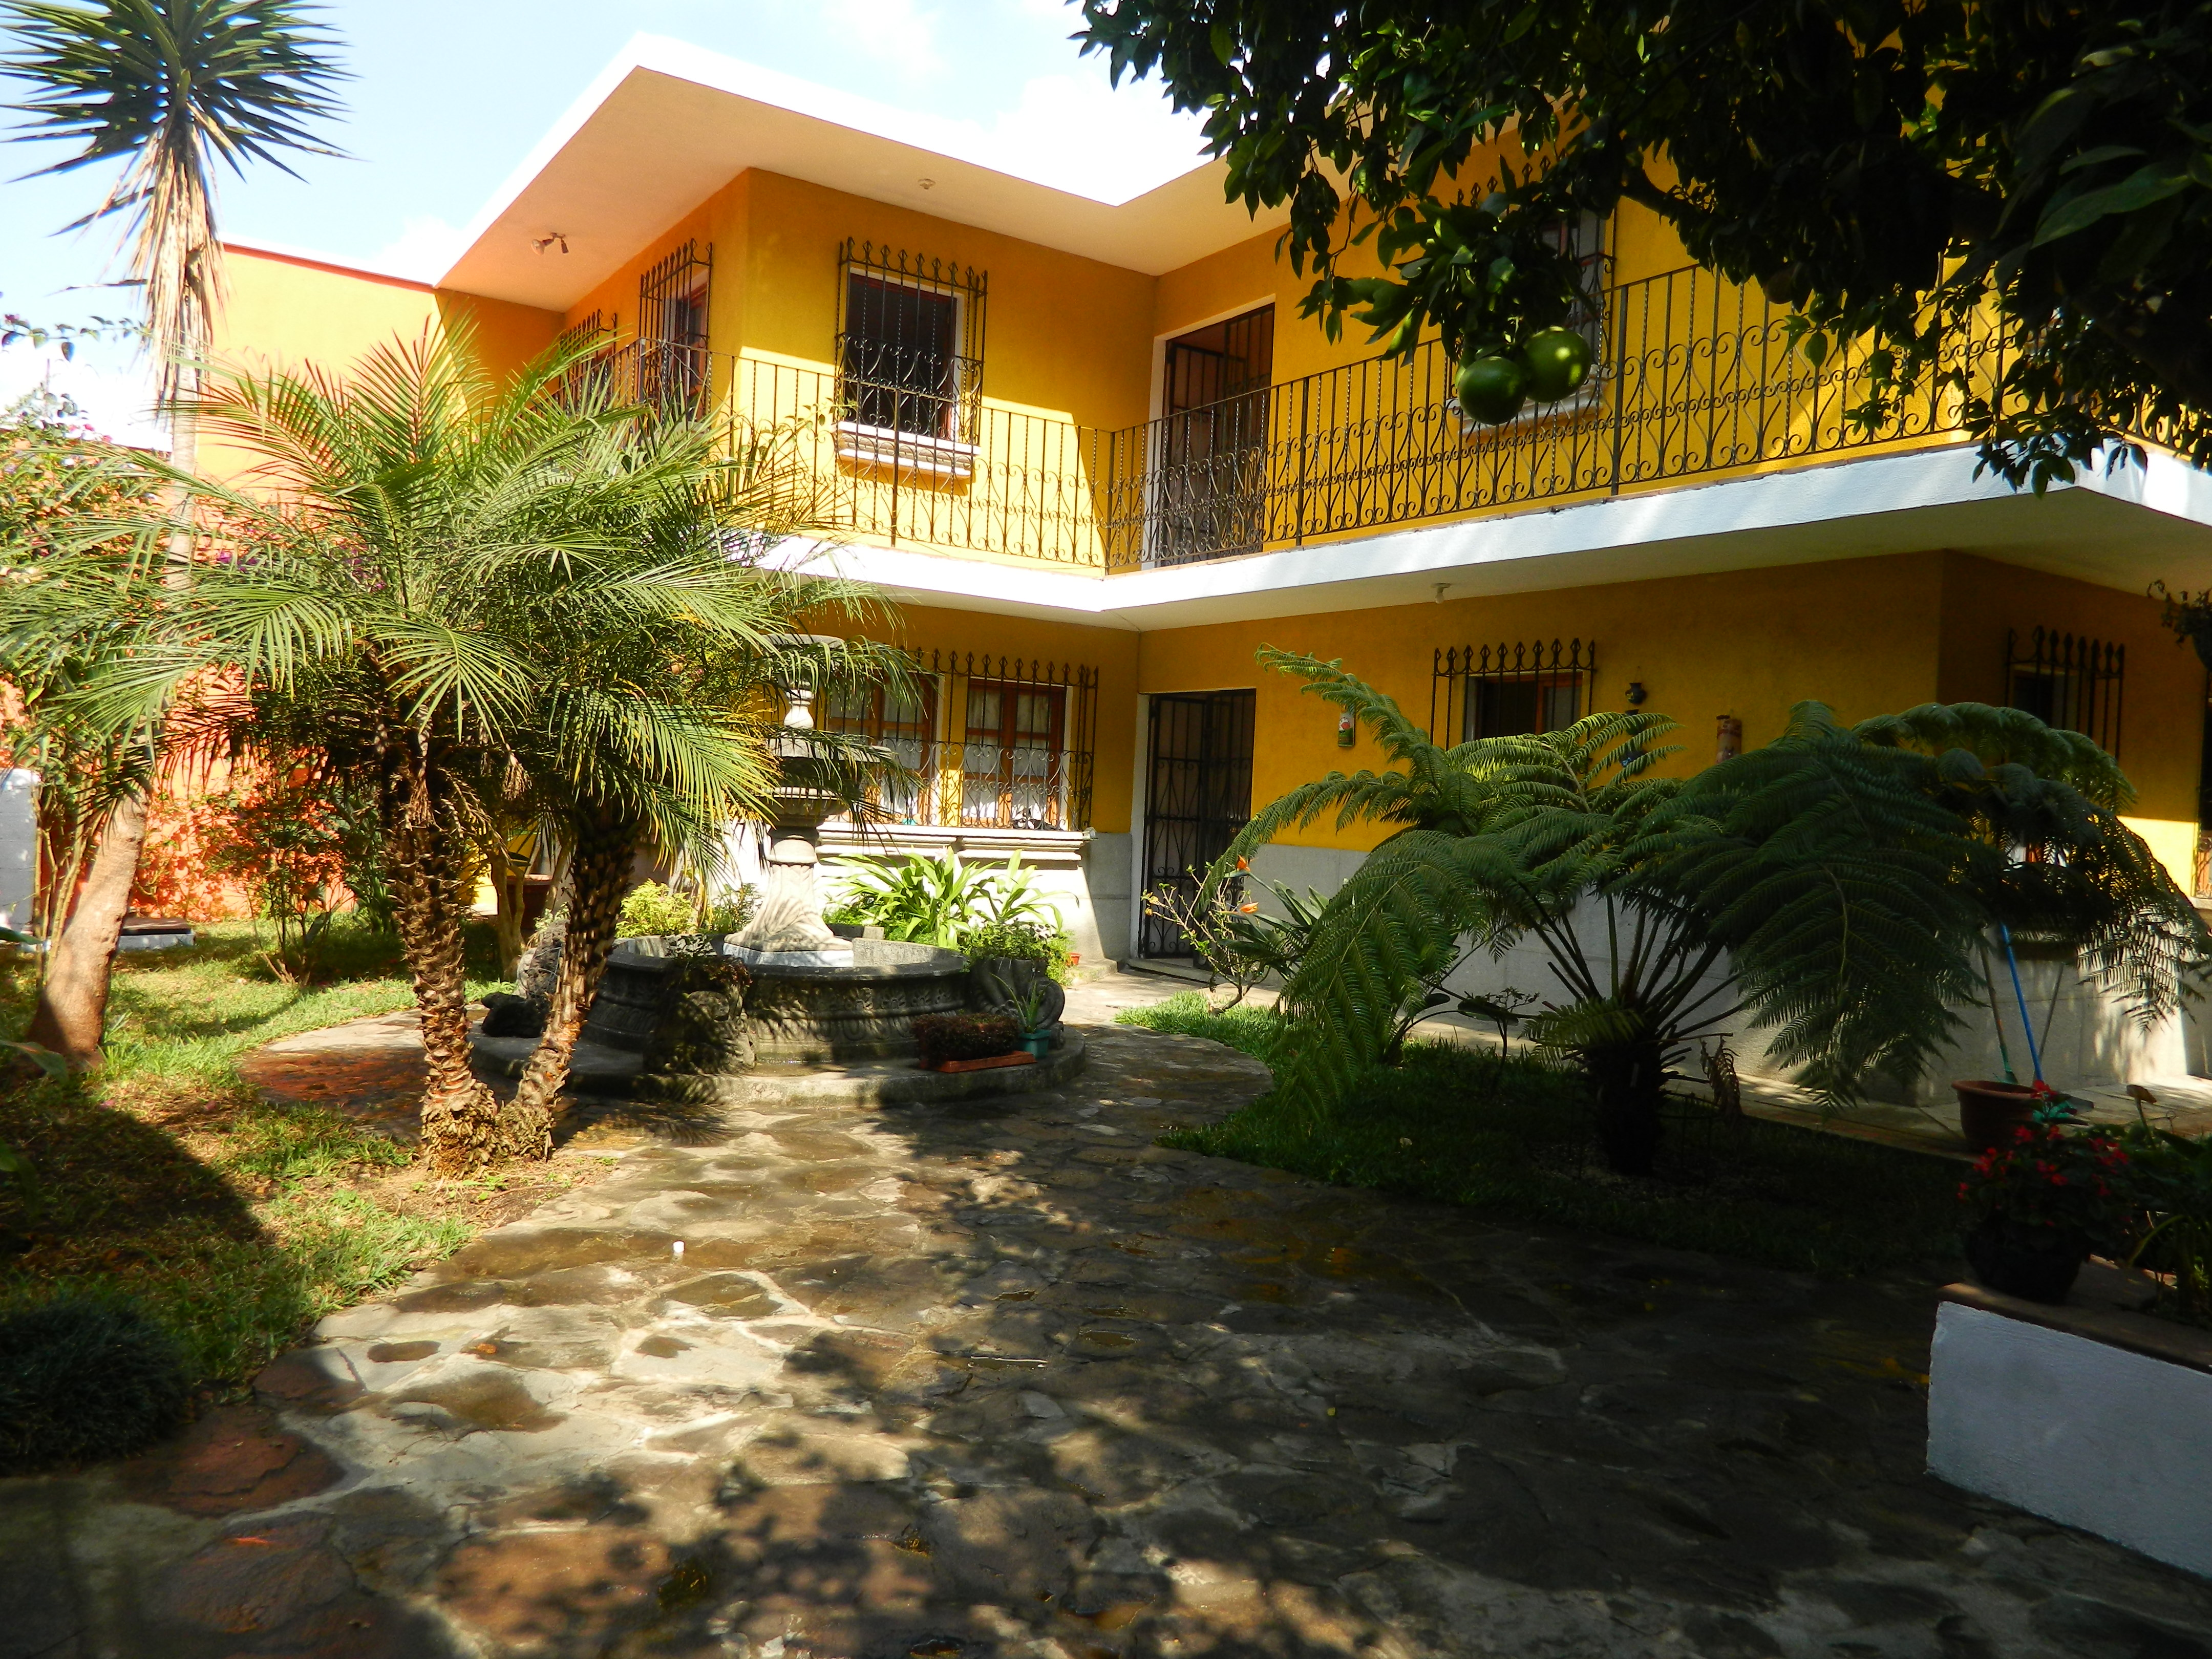 4456   HOUSE FOR SALE IN PARRAMOS ( CHIMALTENANGO )